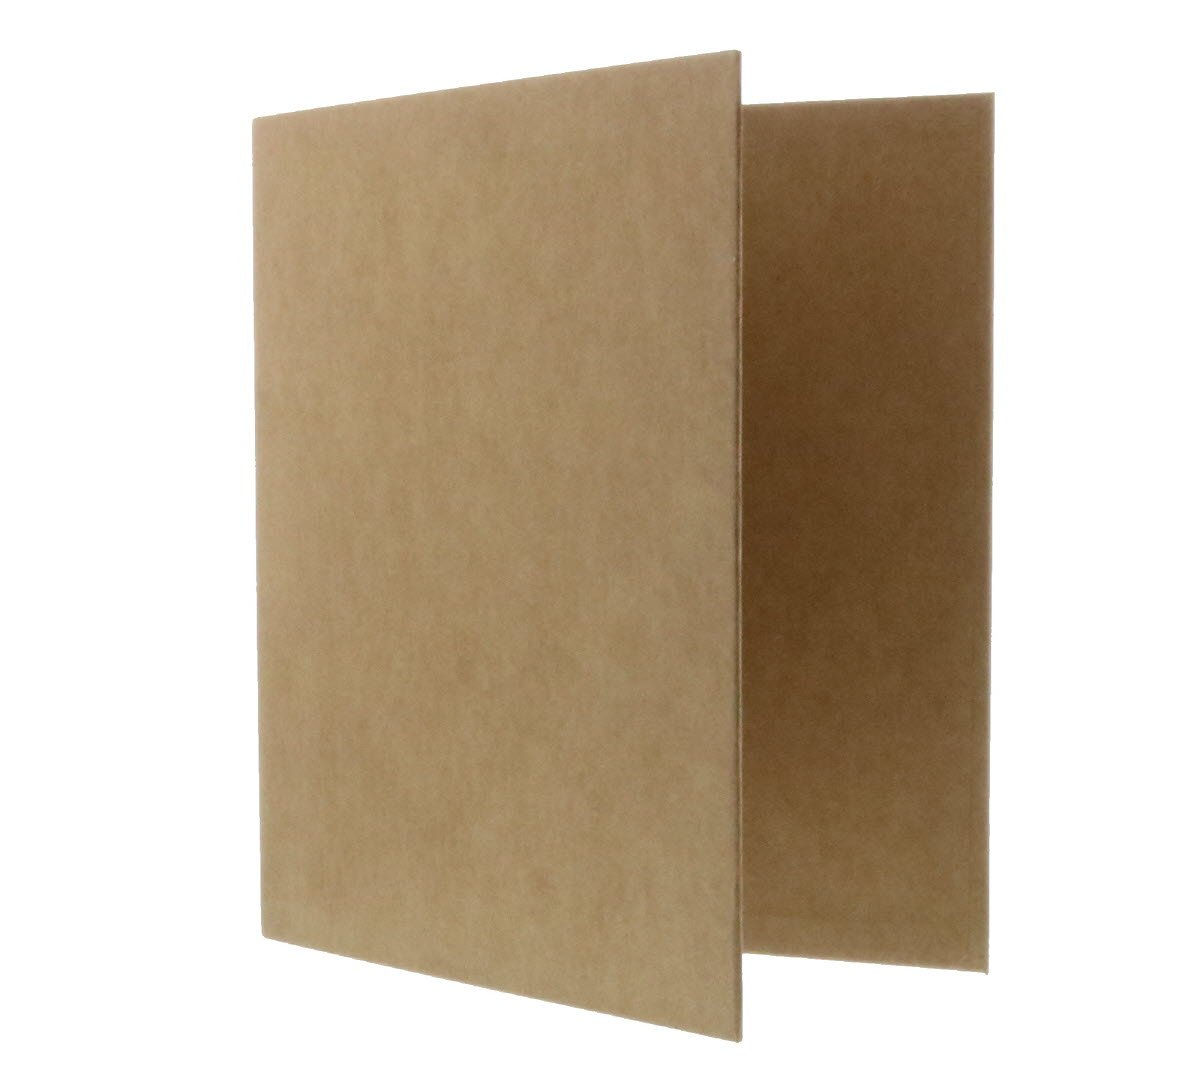 JAM Paper Kraft 1 inch Binder - Natural Recycled Kraft 3 Ring Binder - Sold Individually